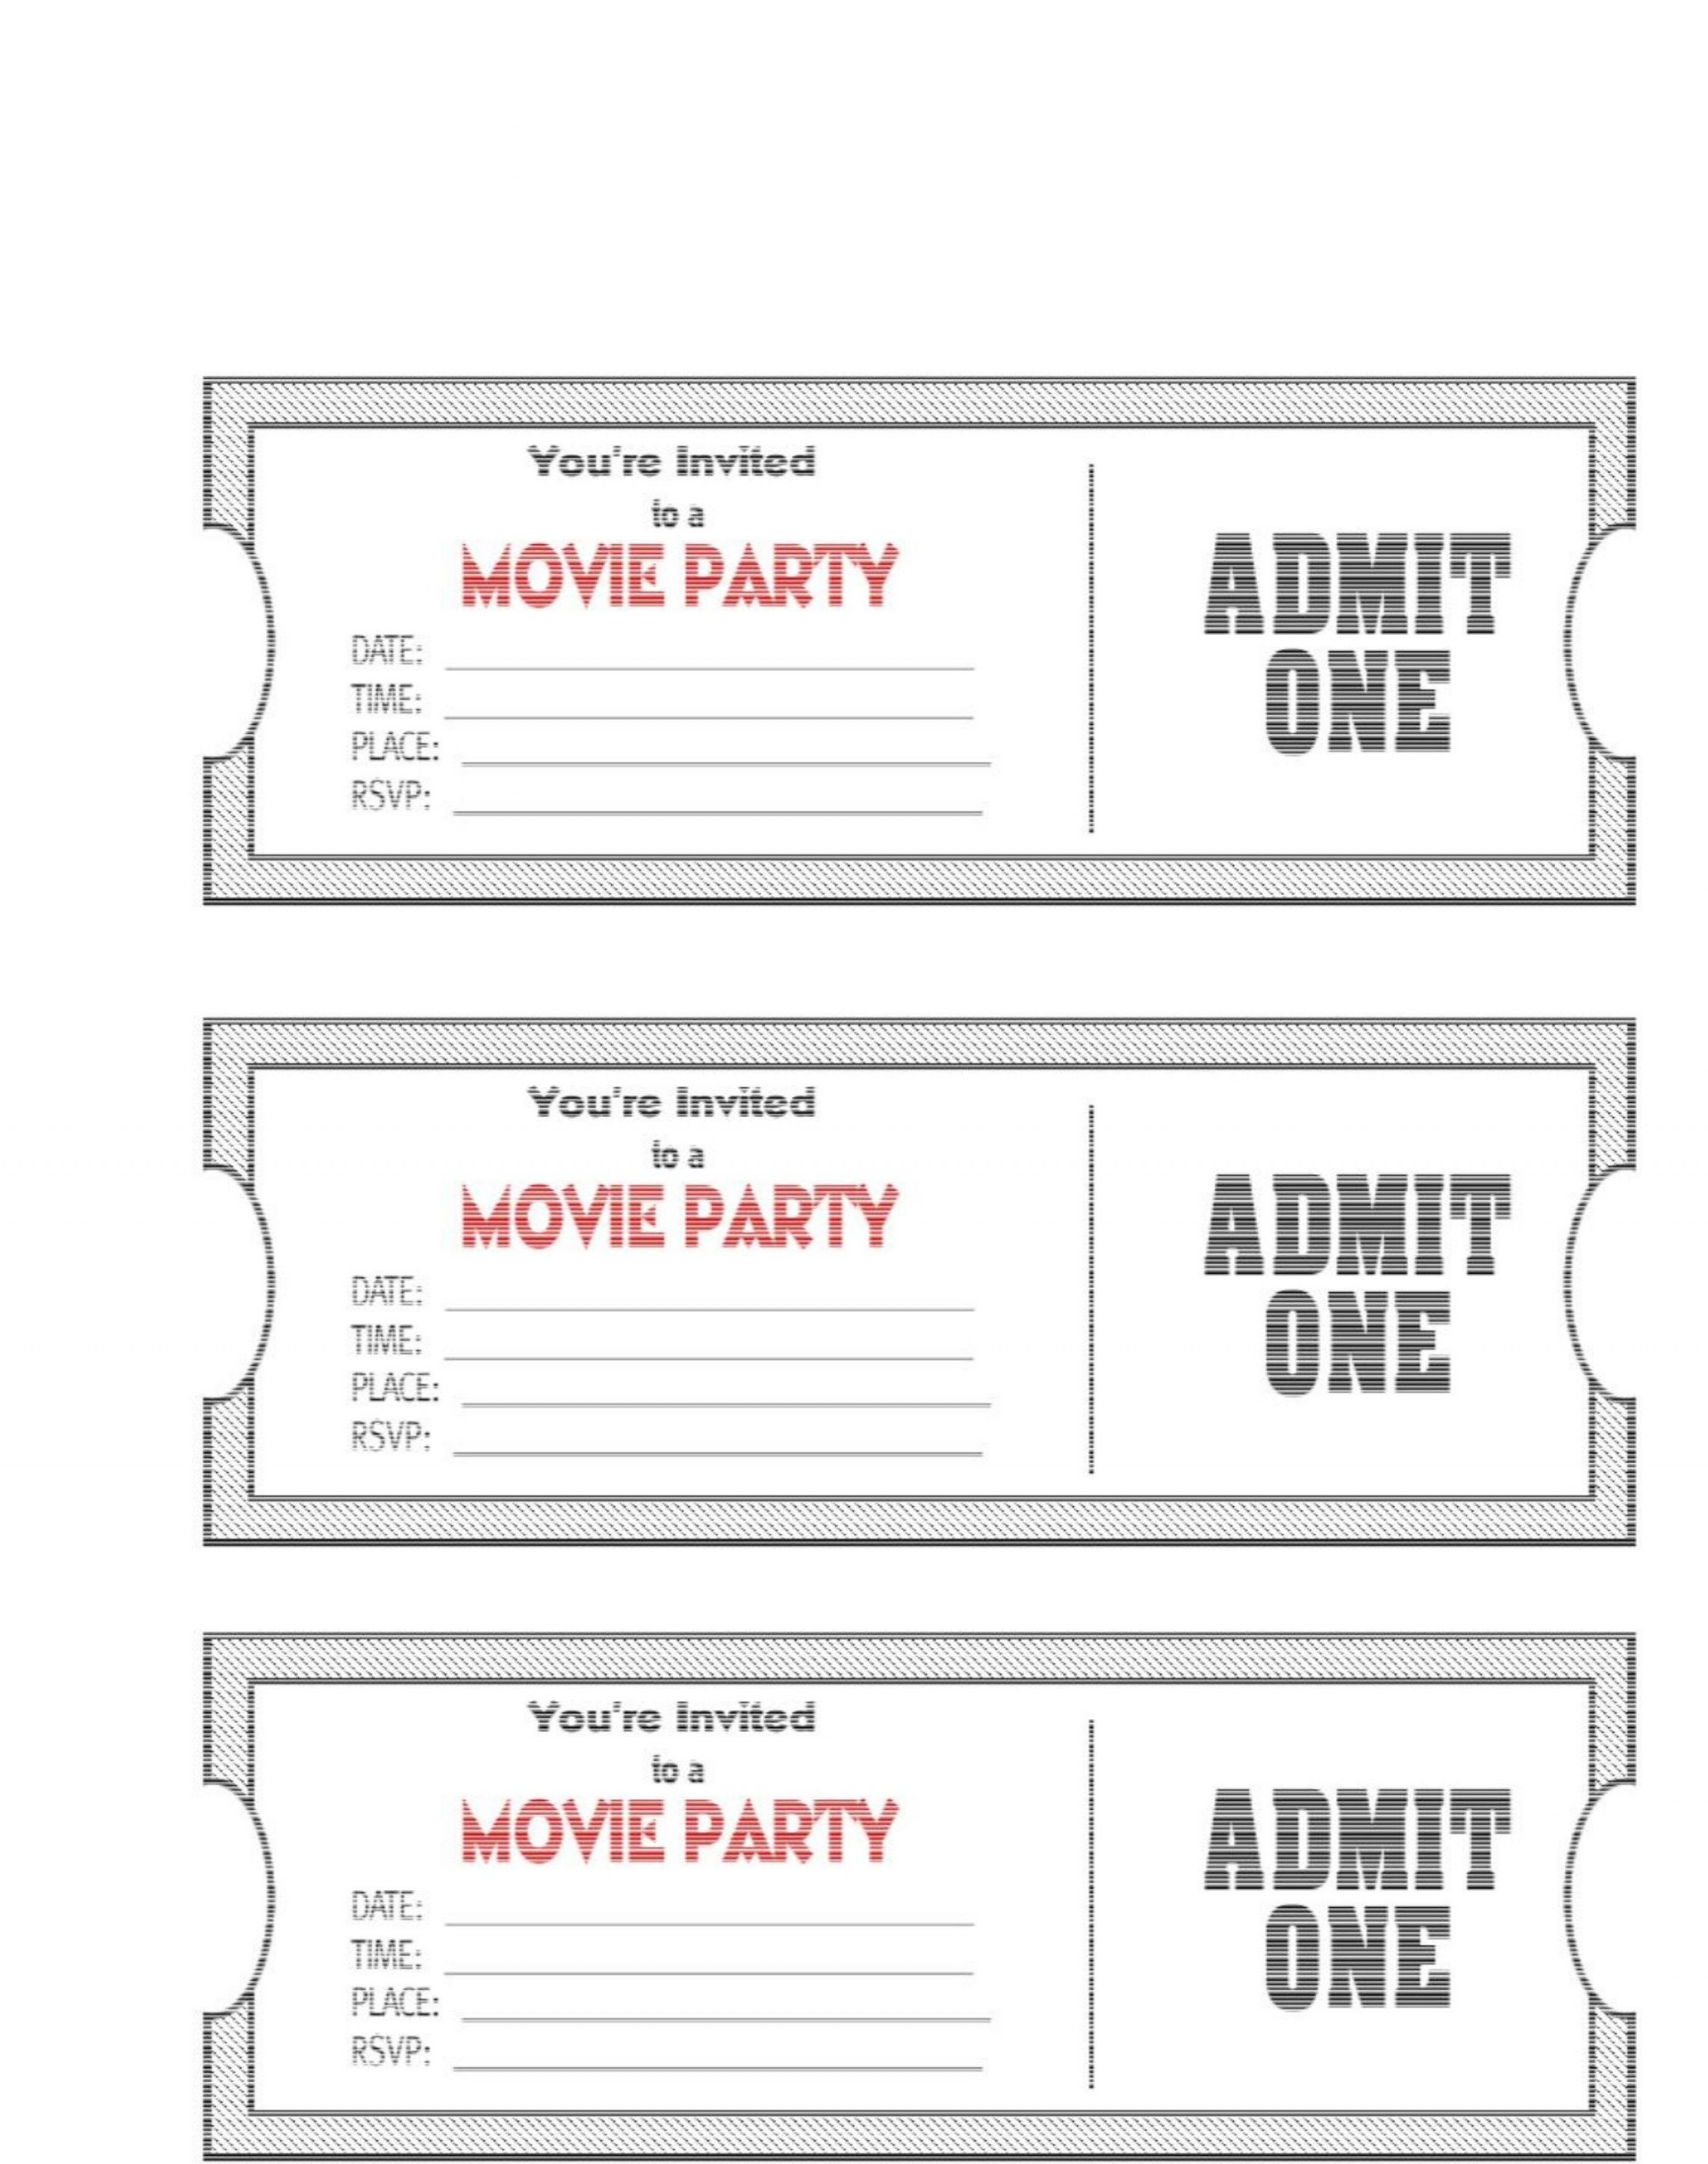 004 Phenomenal Editable Ticket Template Free Image  Word Airline Raffle1920